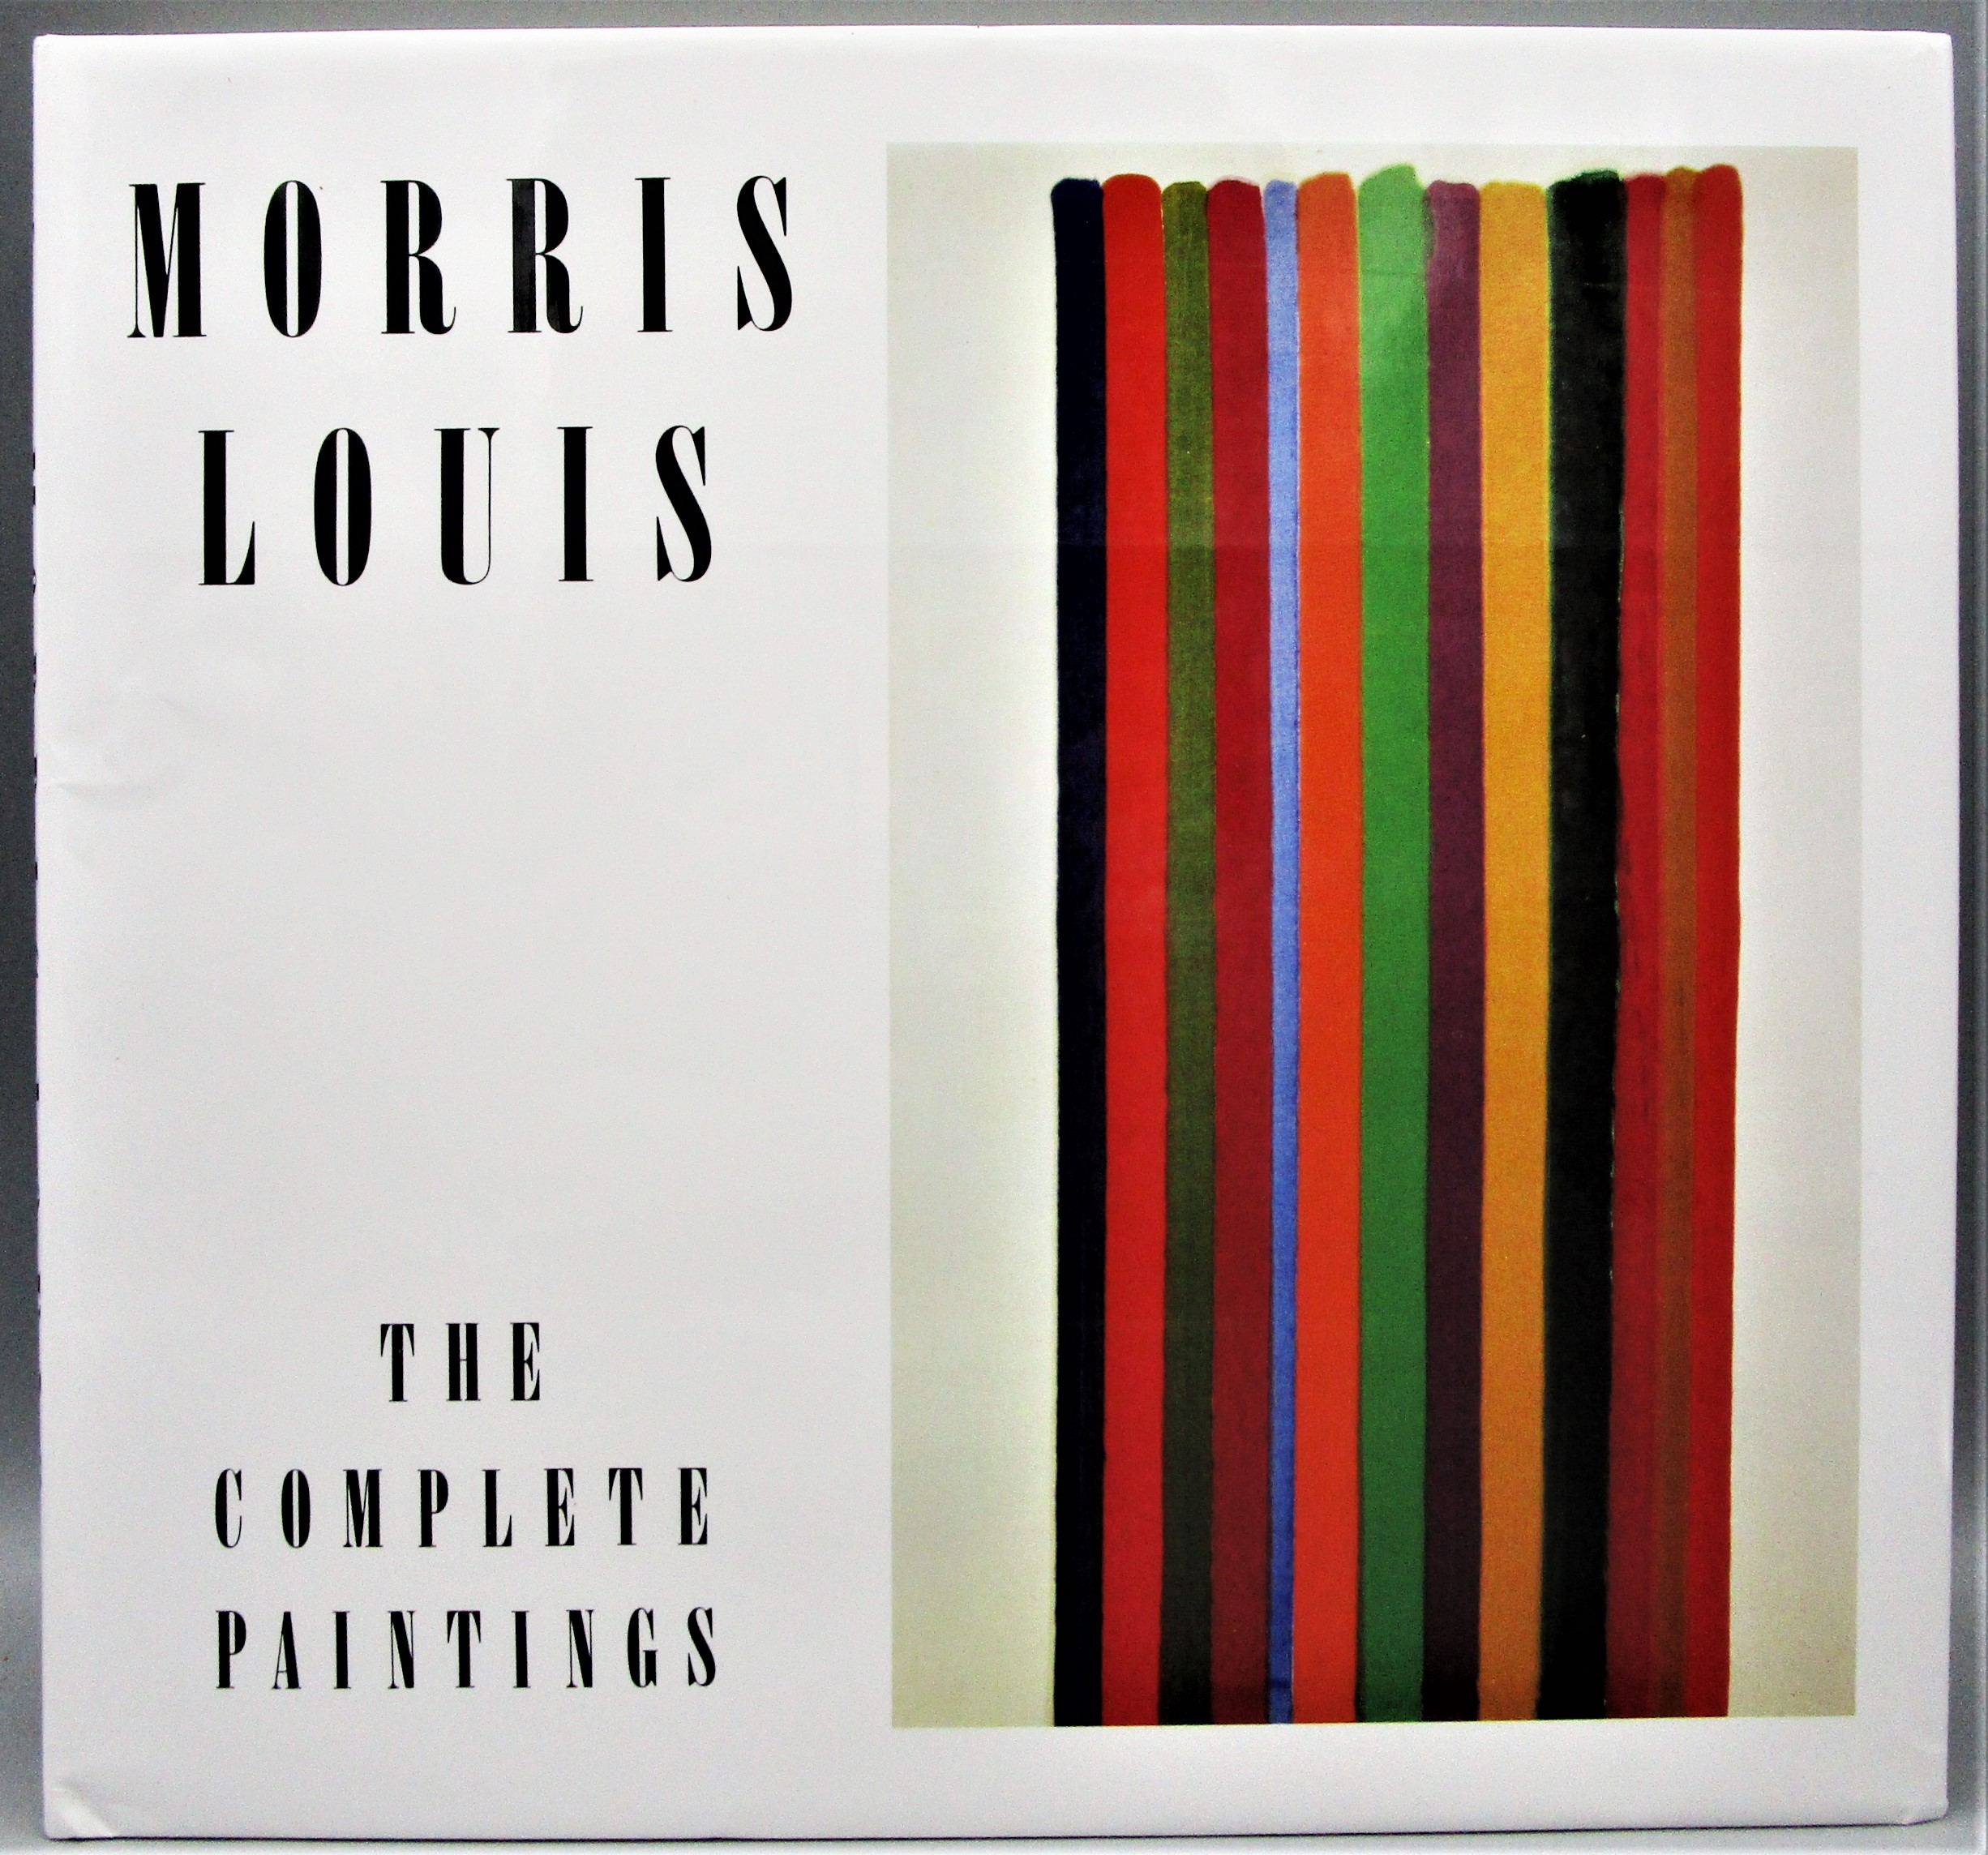 MORRIS LOUIS: THE COMPLETE PAINTINGS, by Diane Upright - 1985